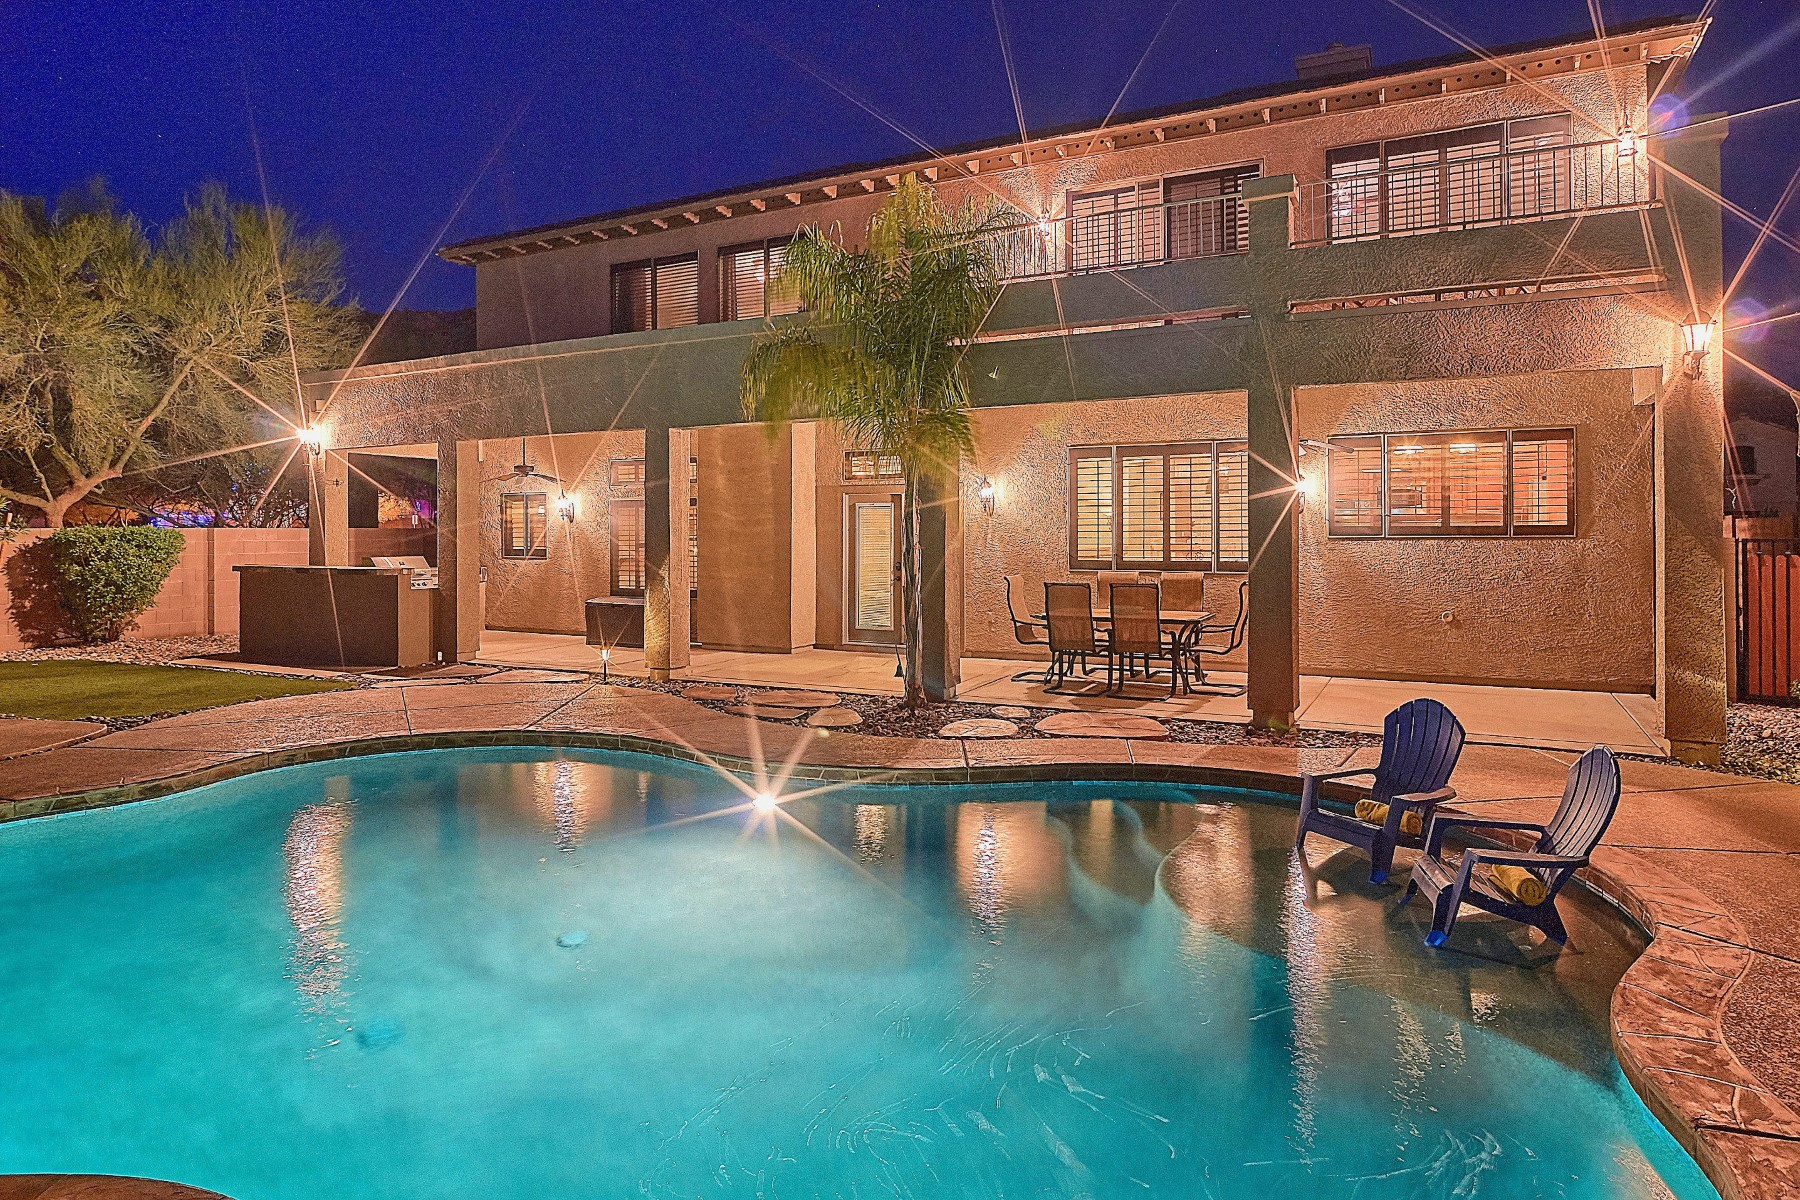 Single Family Home for Sale at Gorgeous home in Amber Hills 34312 N 23rd Ln Phoenix, Arizona, 85085 United States